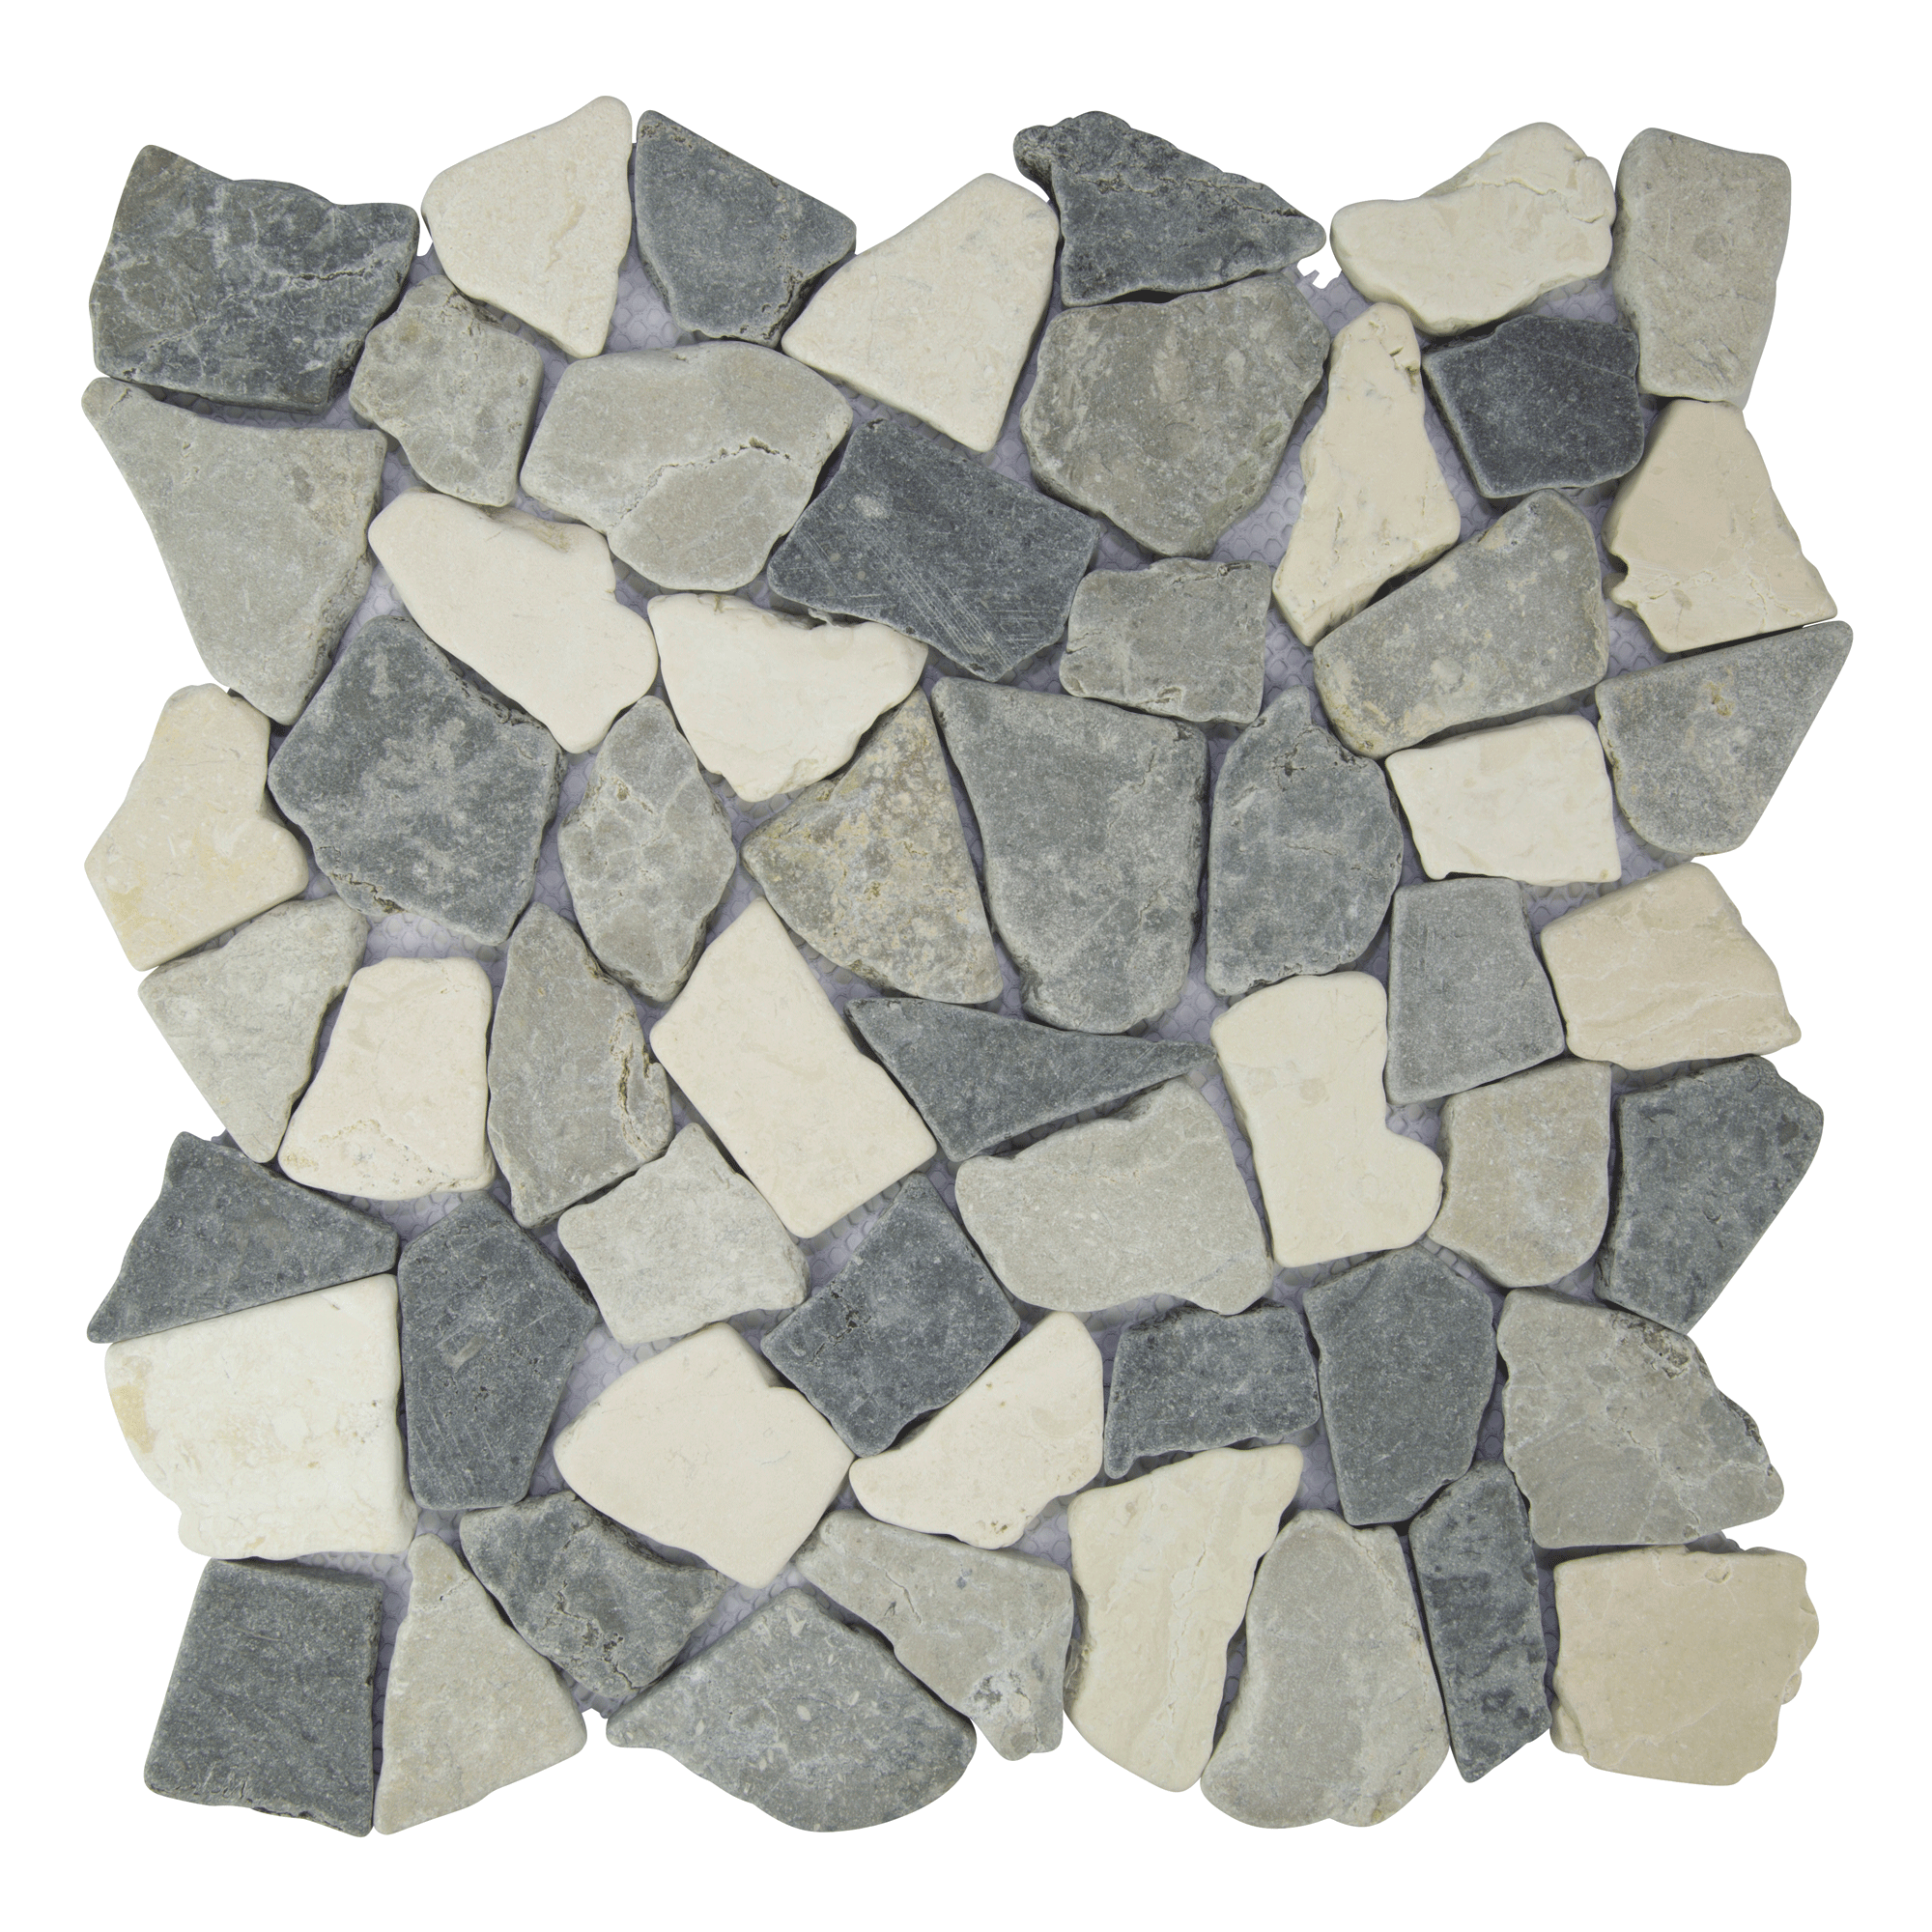 Easy To Install Mesh Backed Interlocking Natural Stone Tile Made Out Of High Quality Indonesian Marble In White Pebble Mosaic Tile Pebble Tile Mosaic Tiles